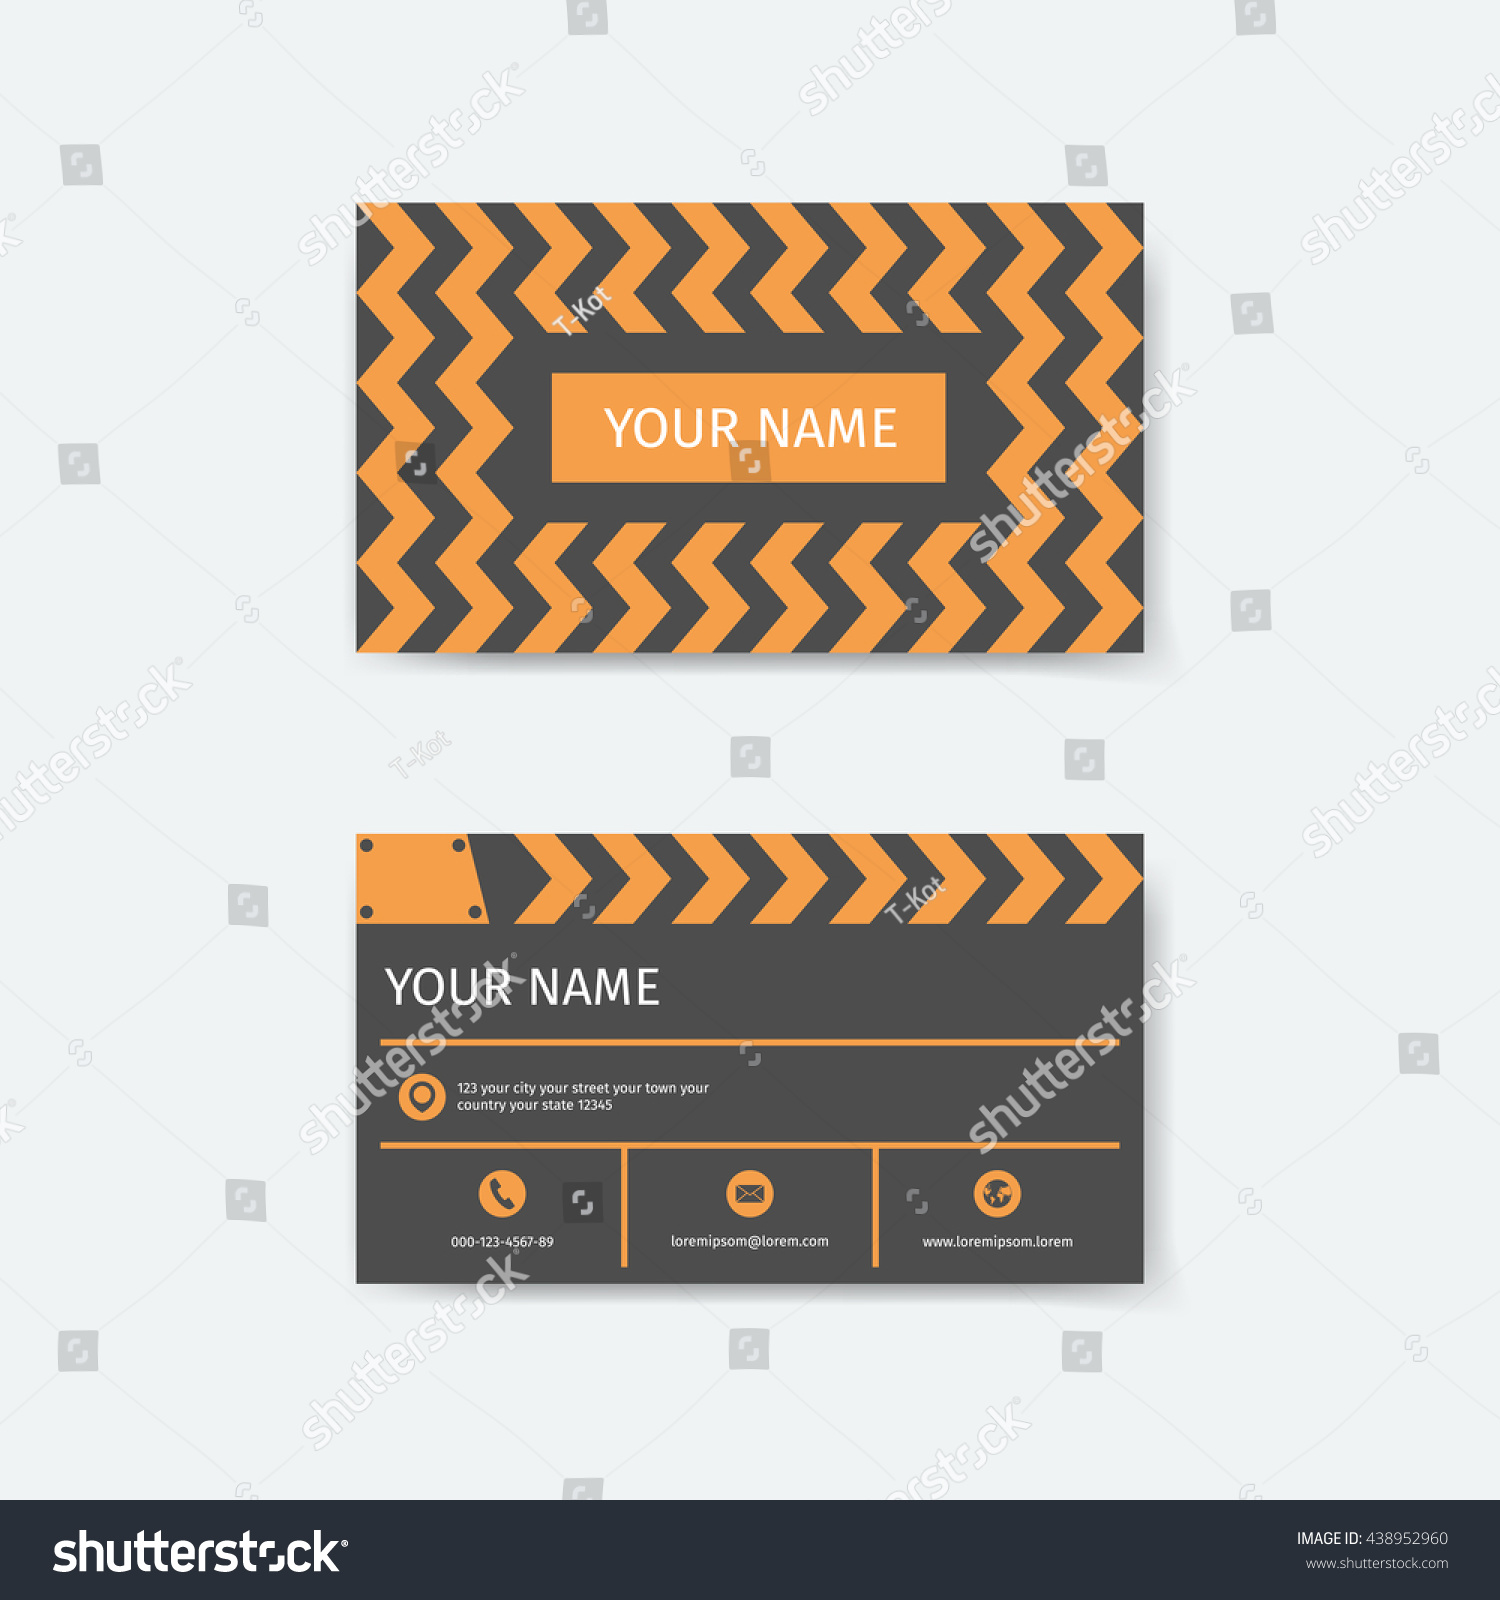 Business Card Design Template Clapboard Film Stock Vector 438952960 ...